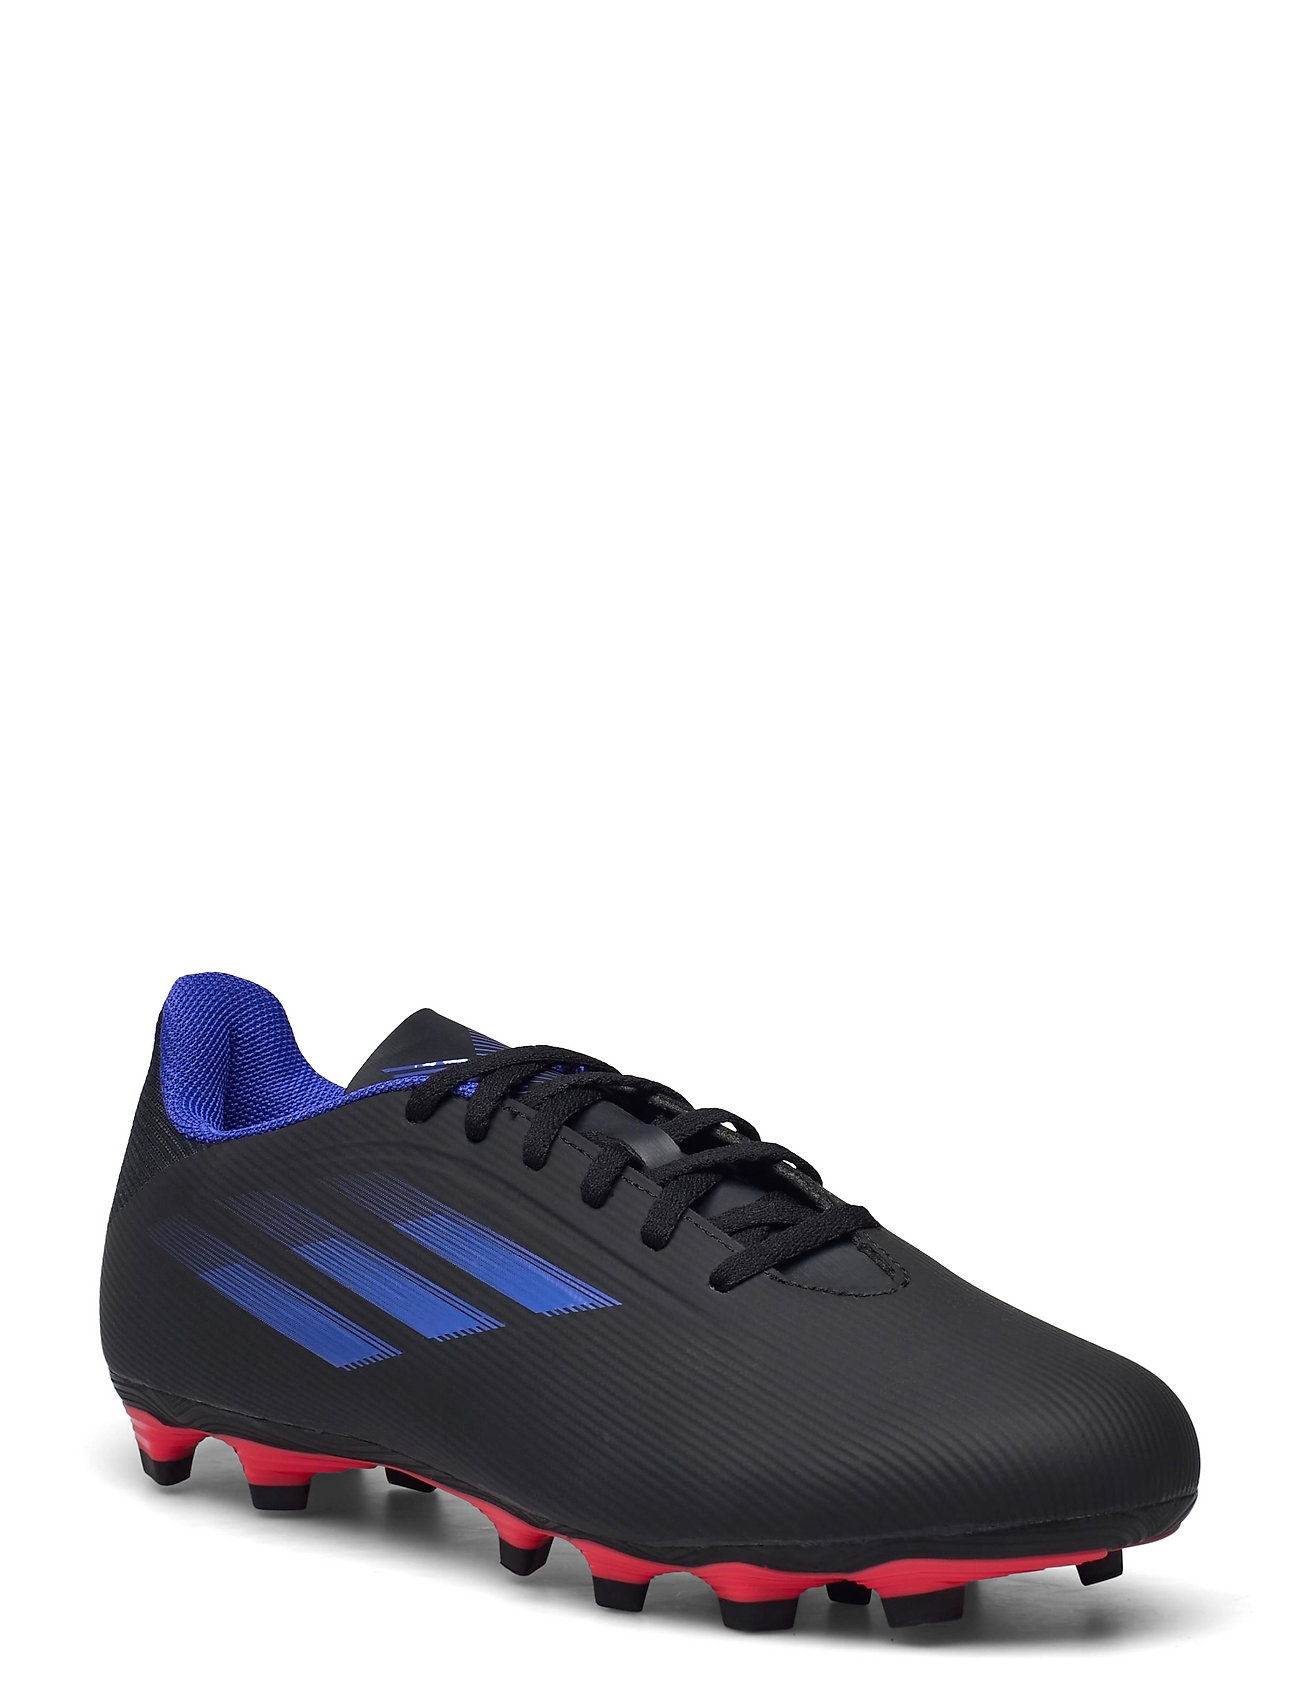 X Speedflow.4 Flexible Ground Boots Q3q4 21 Shoes Sport Shoes Football Boots Sort Adidas Performance